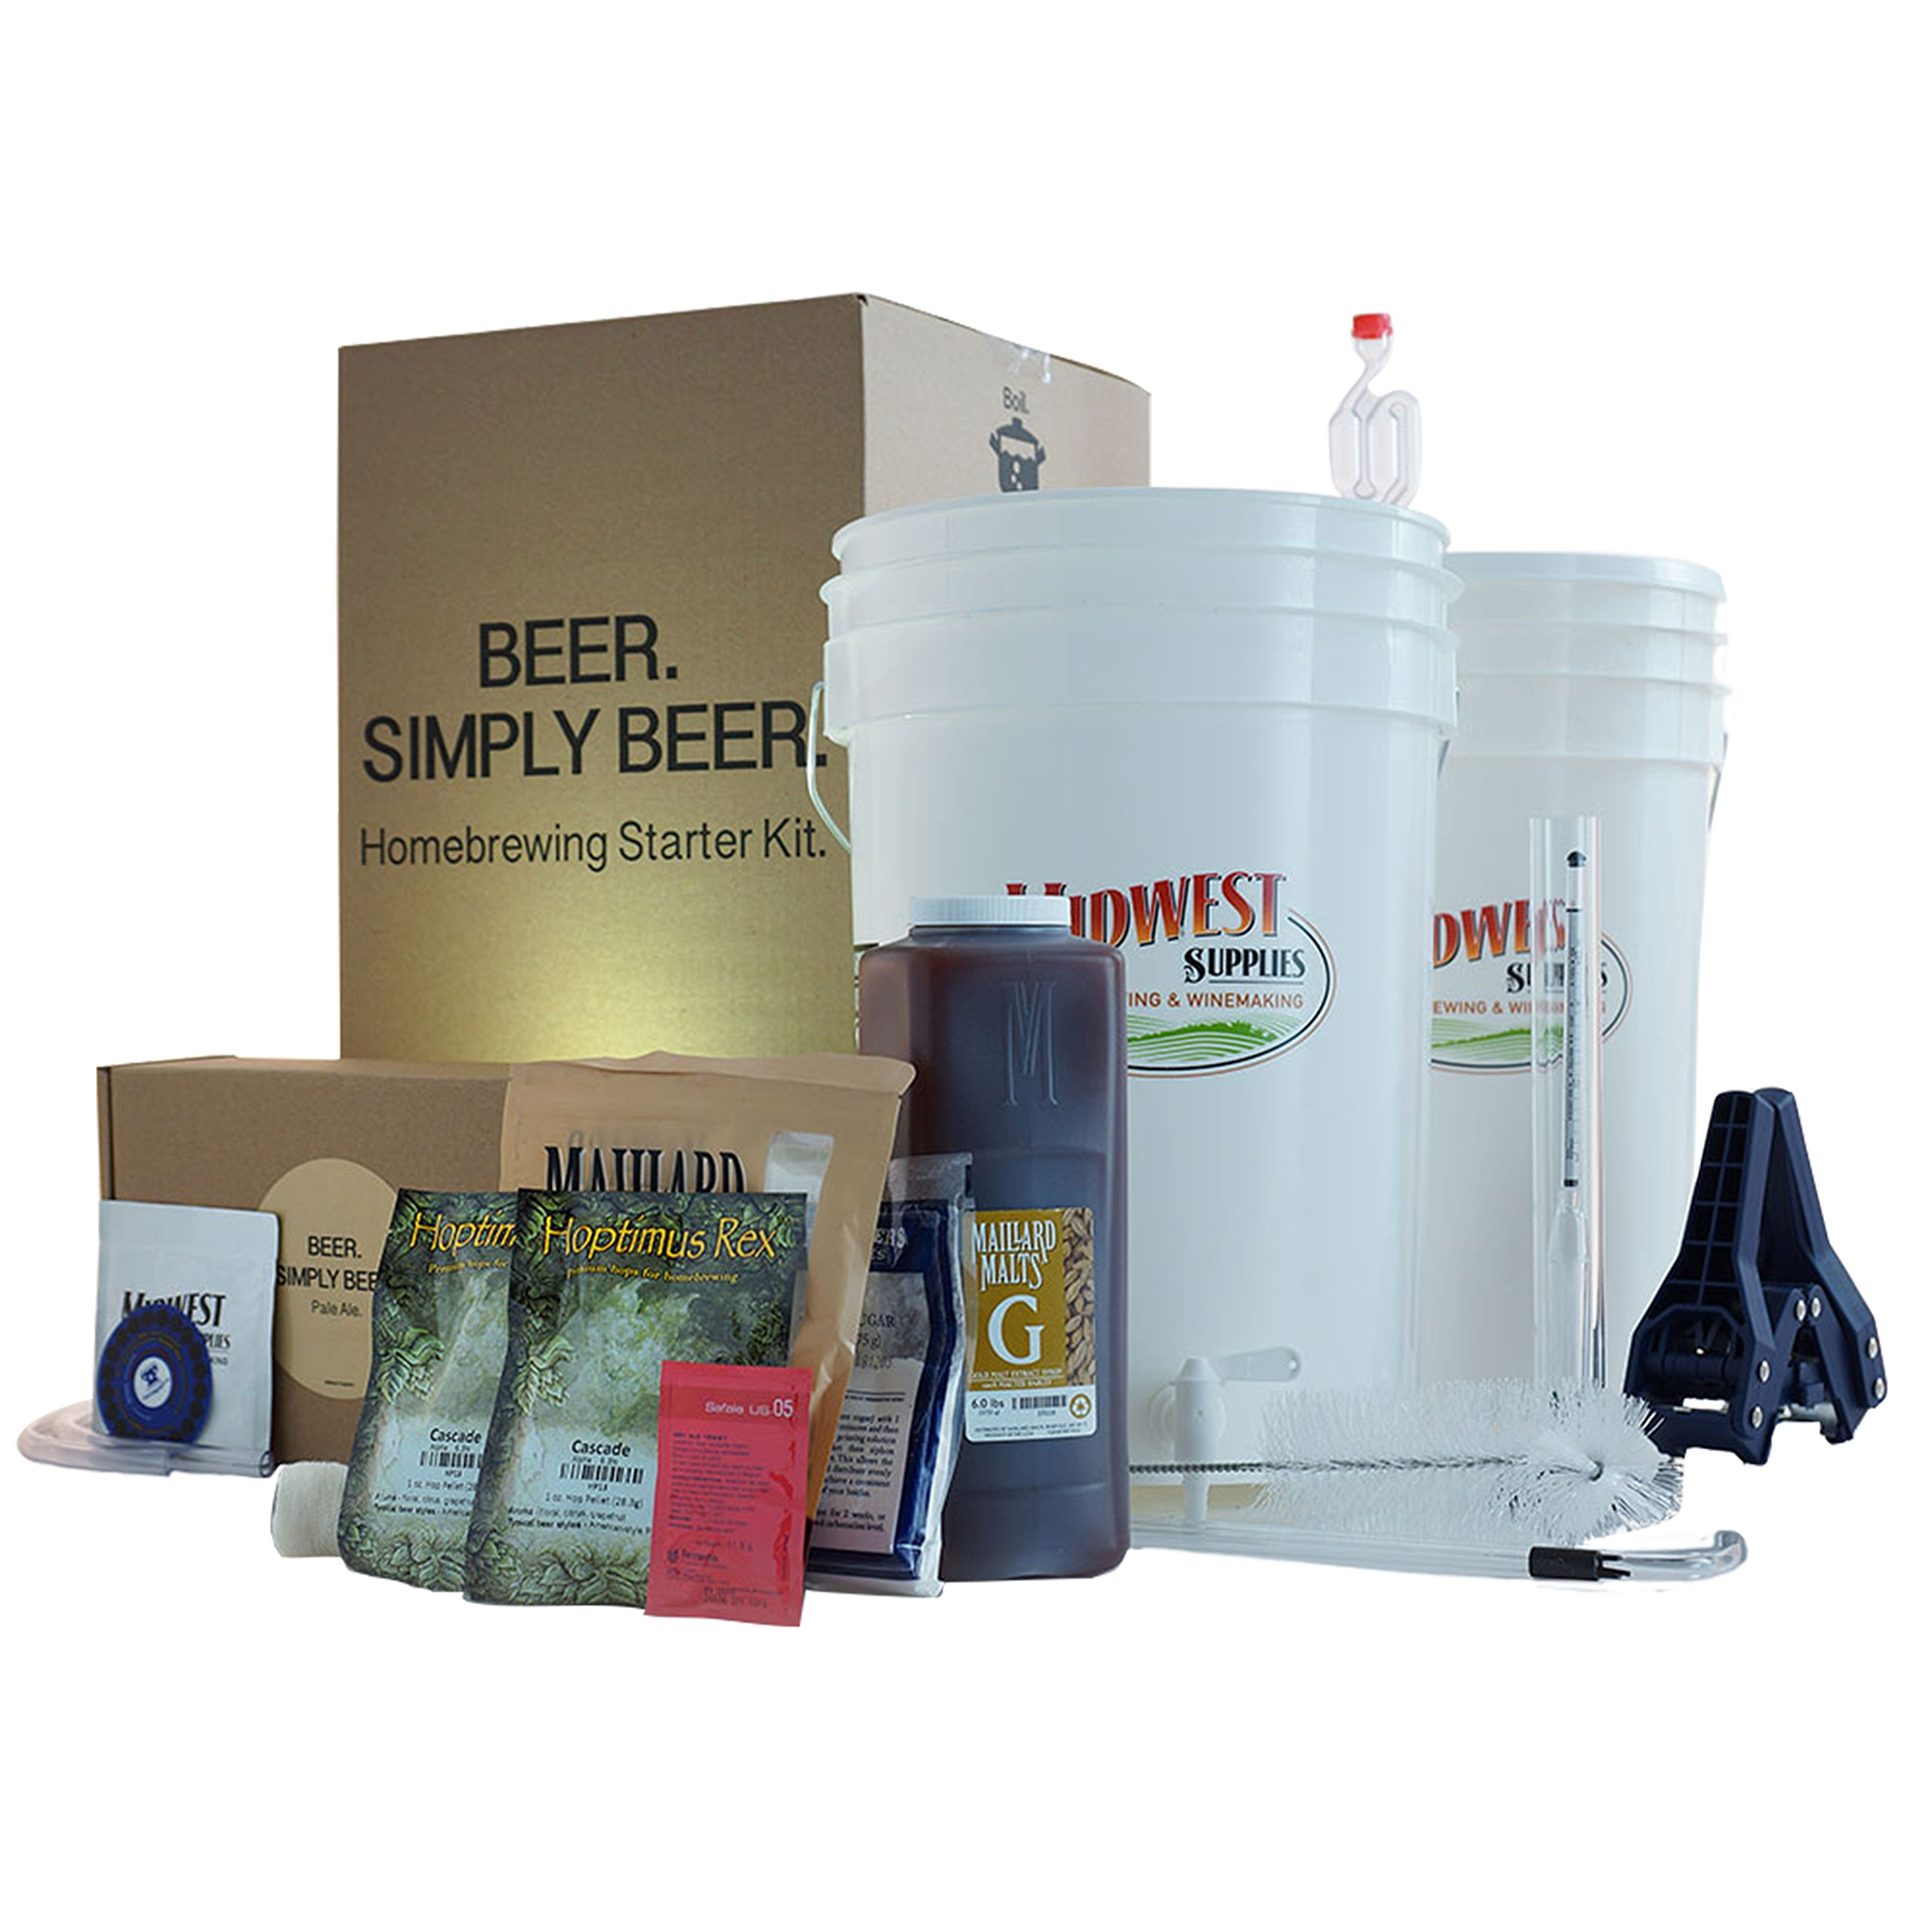 Beer. Simply Beer. - HomeBrewing Beer Brewing Starter Kit - 5 Gallons Beer Making Pale Ale Recipe Kit With 6.5 Gallon Fermenting Bucket Equipment